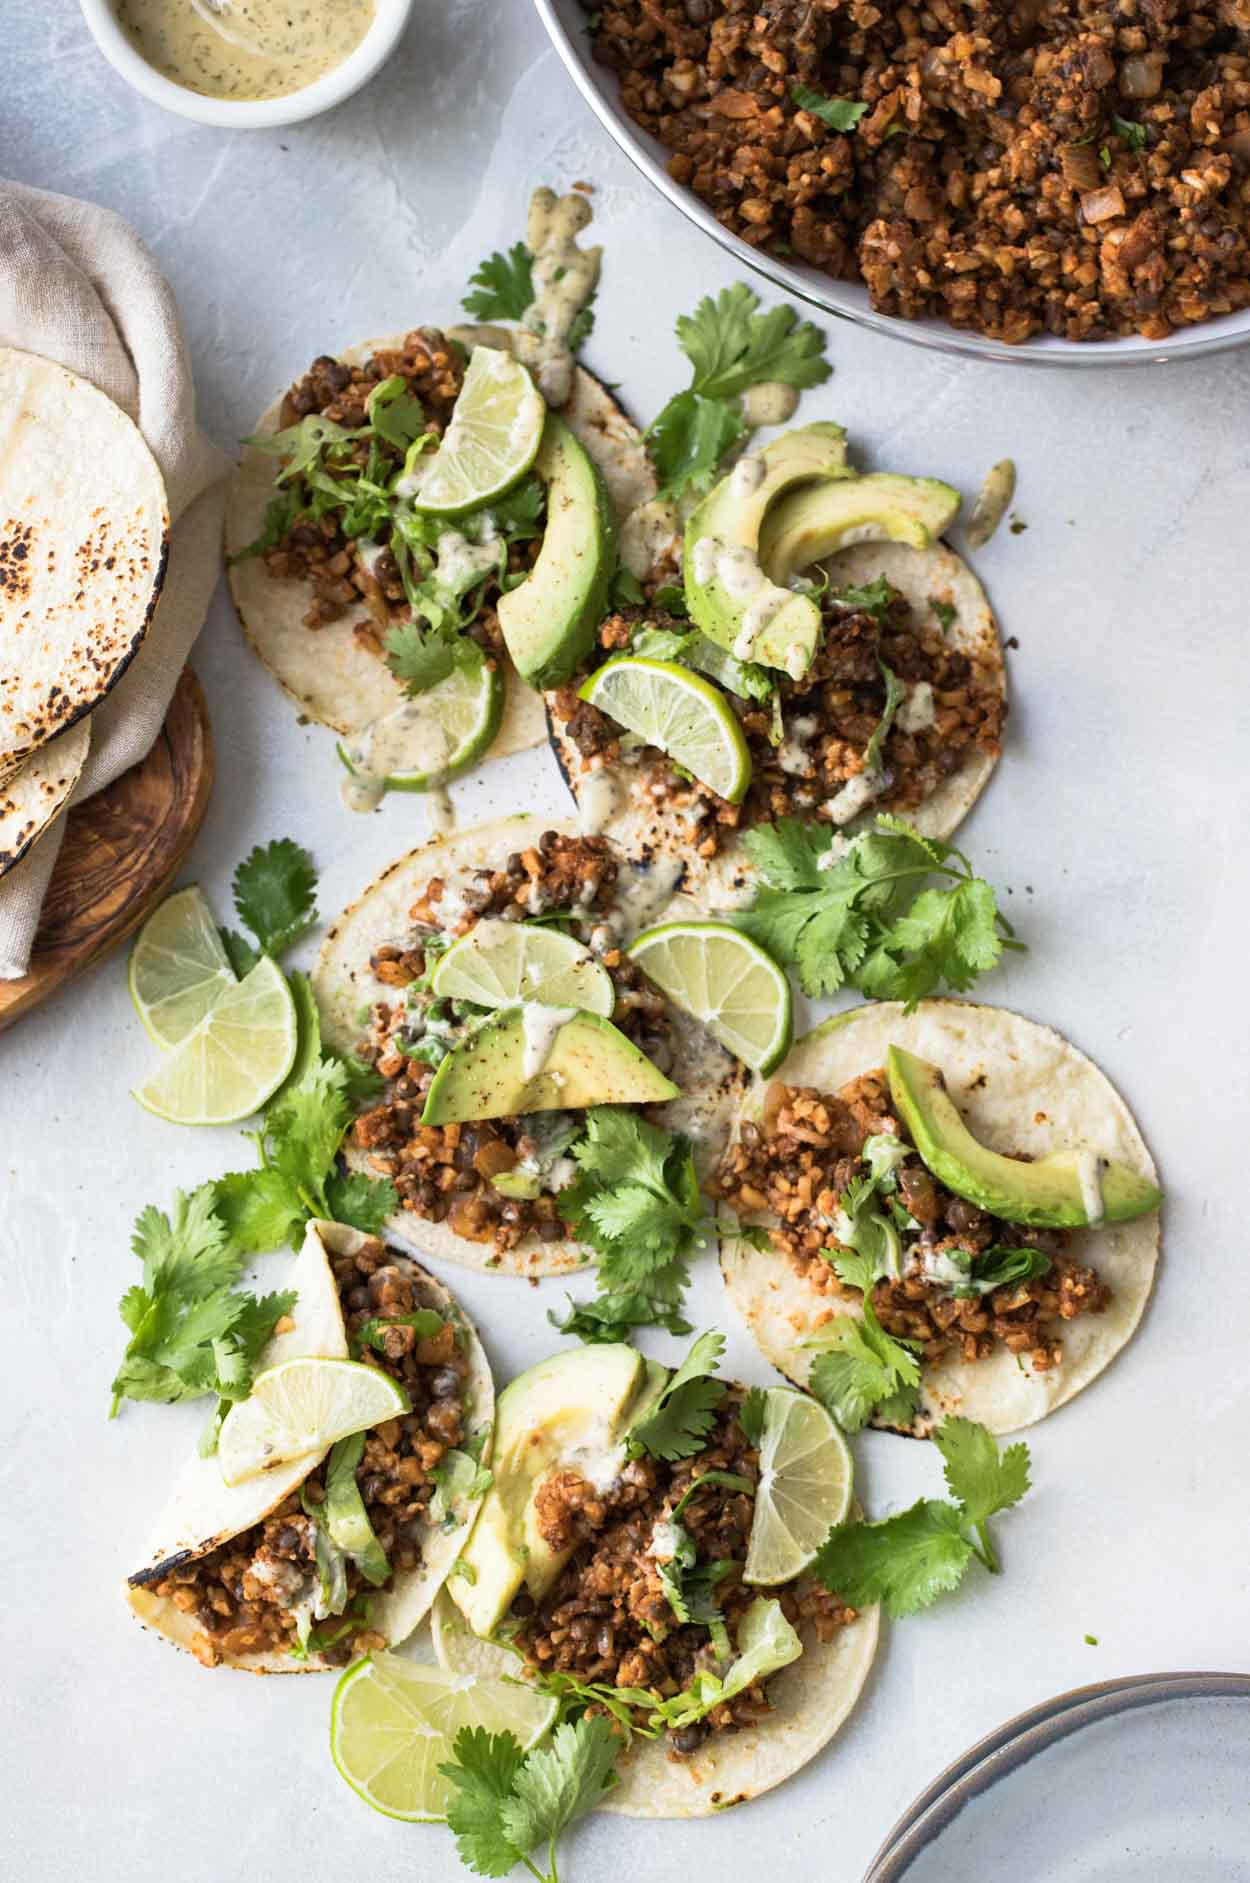 Cauliflower rice and lentil tacos on corn tortillas with limes, cilantro and avocado on a white board